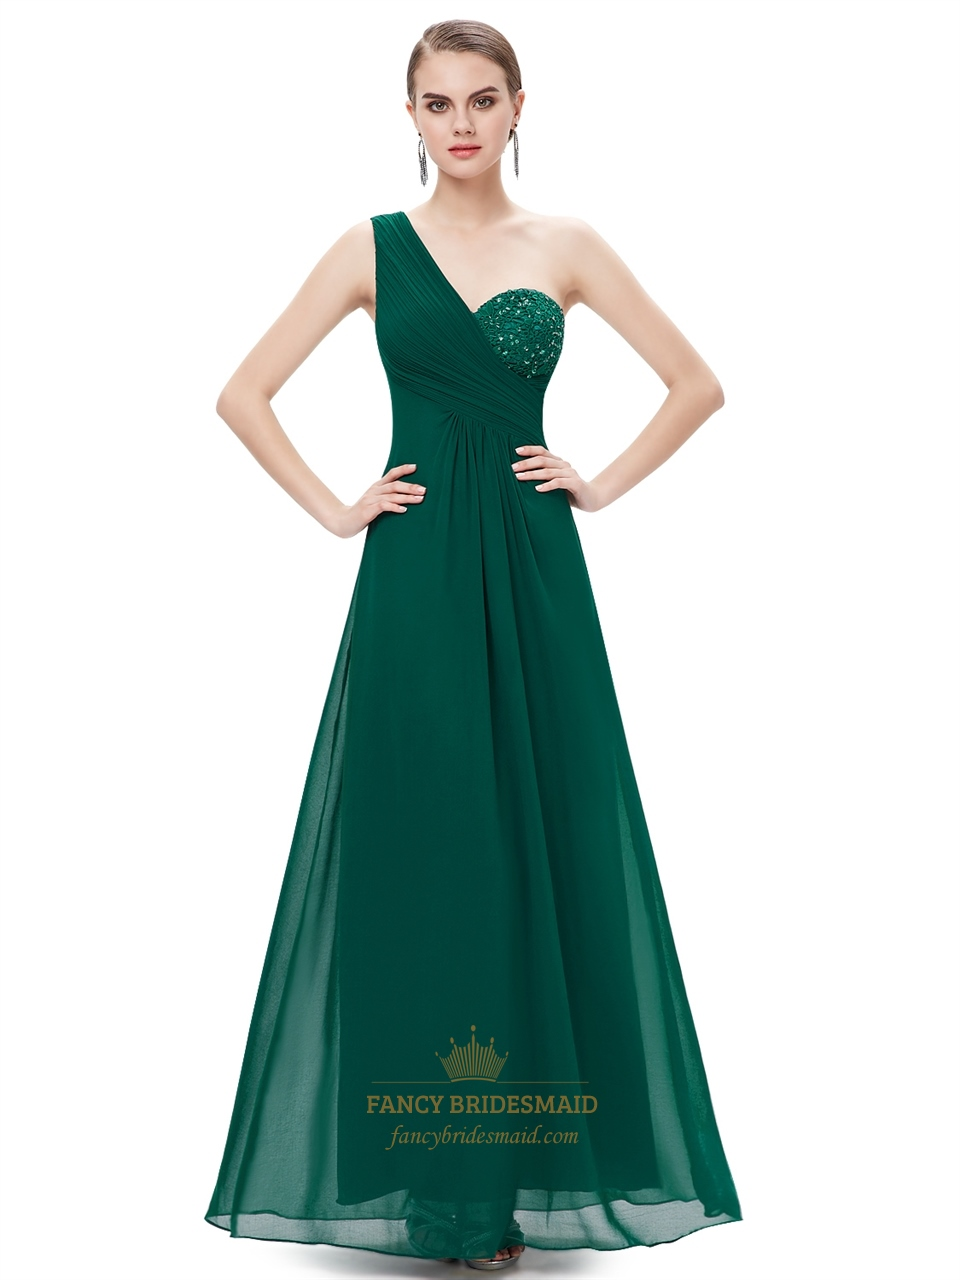 Emerald green one shoulder chiffon bridesmaid dresses with lace emerald green one shoulder chiffon bridesmaid dresses with lace bodice ombrellifo Gallery